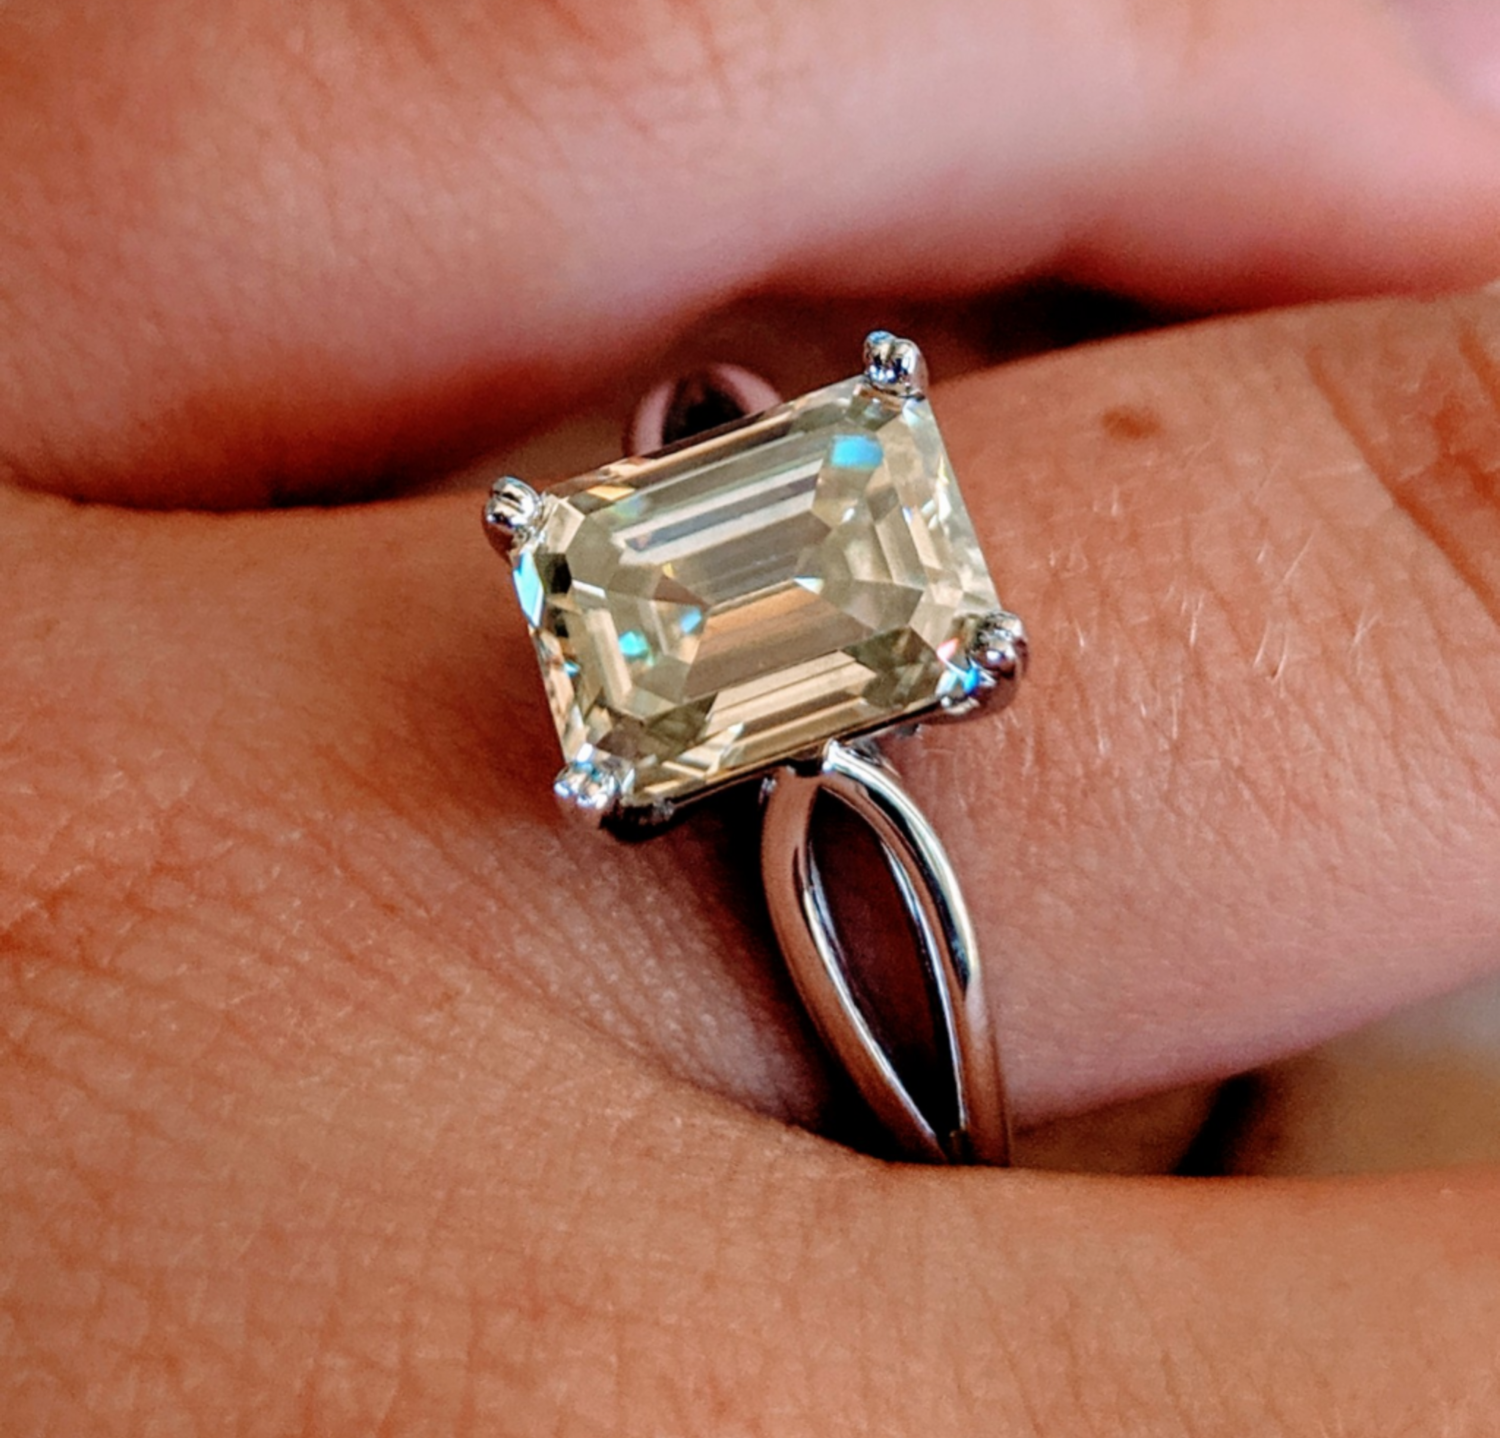 2.5 ct (9x7 mm) Emerald Cut Moissanite in White Gold